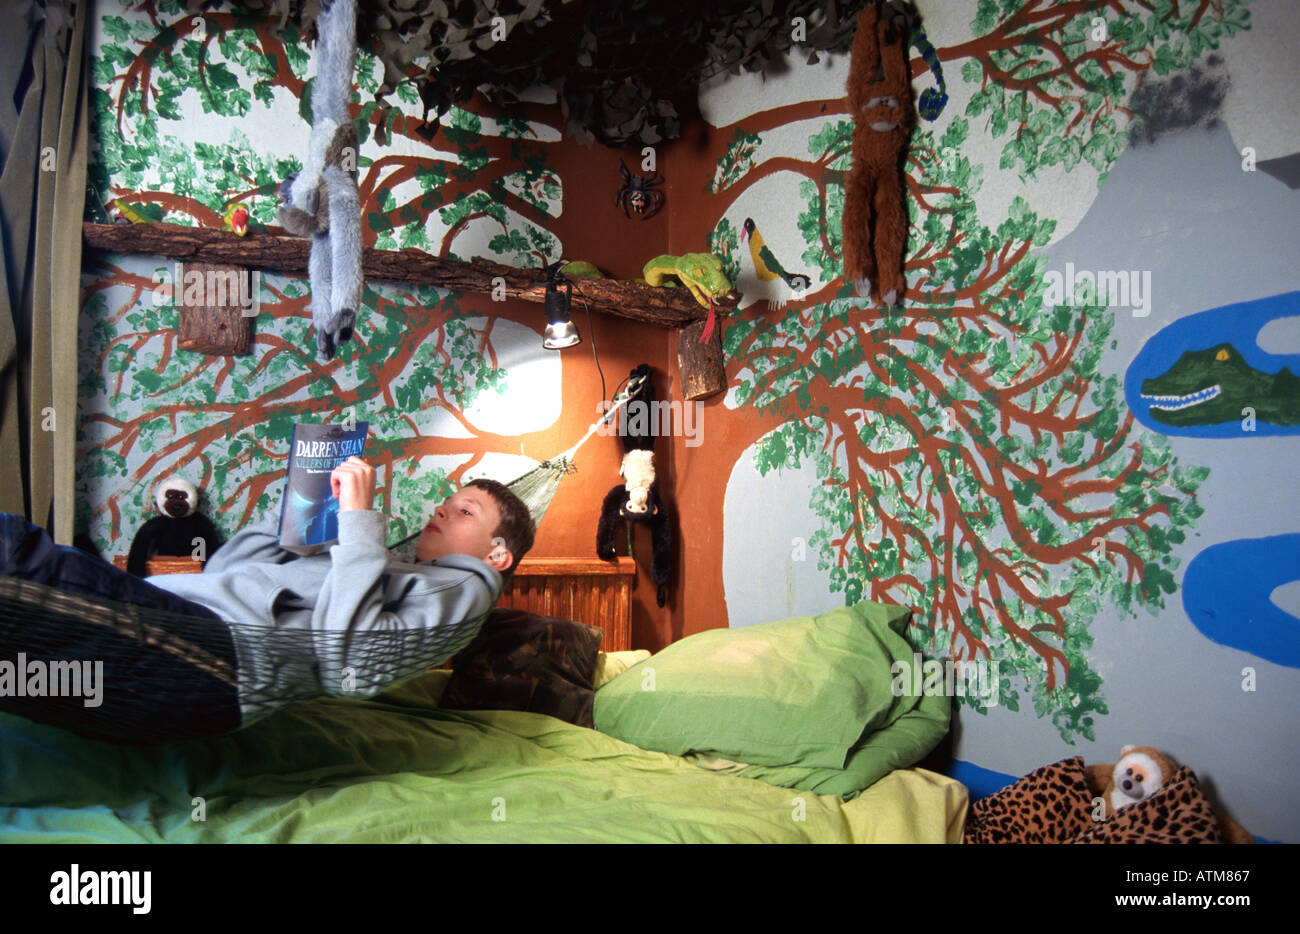 Boy Reading In Hammock In Jungle Themed Bedroom Oscar Hanna